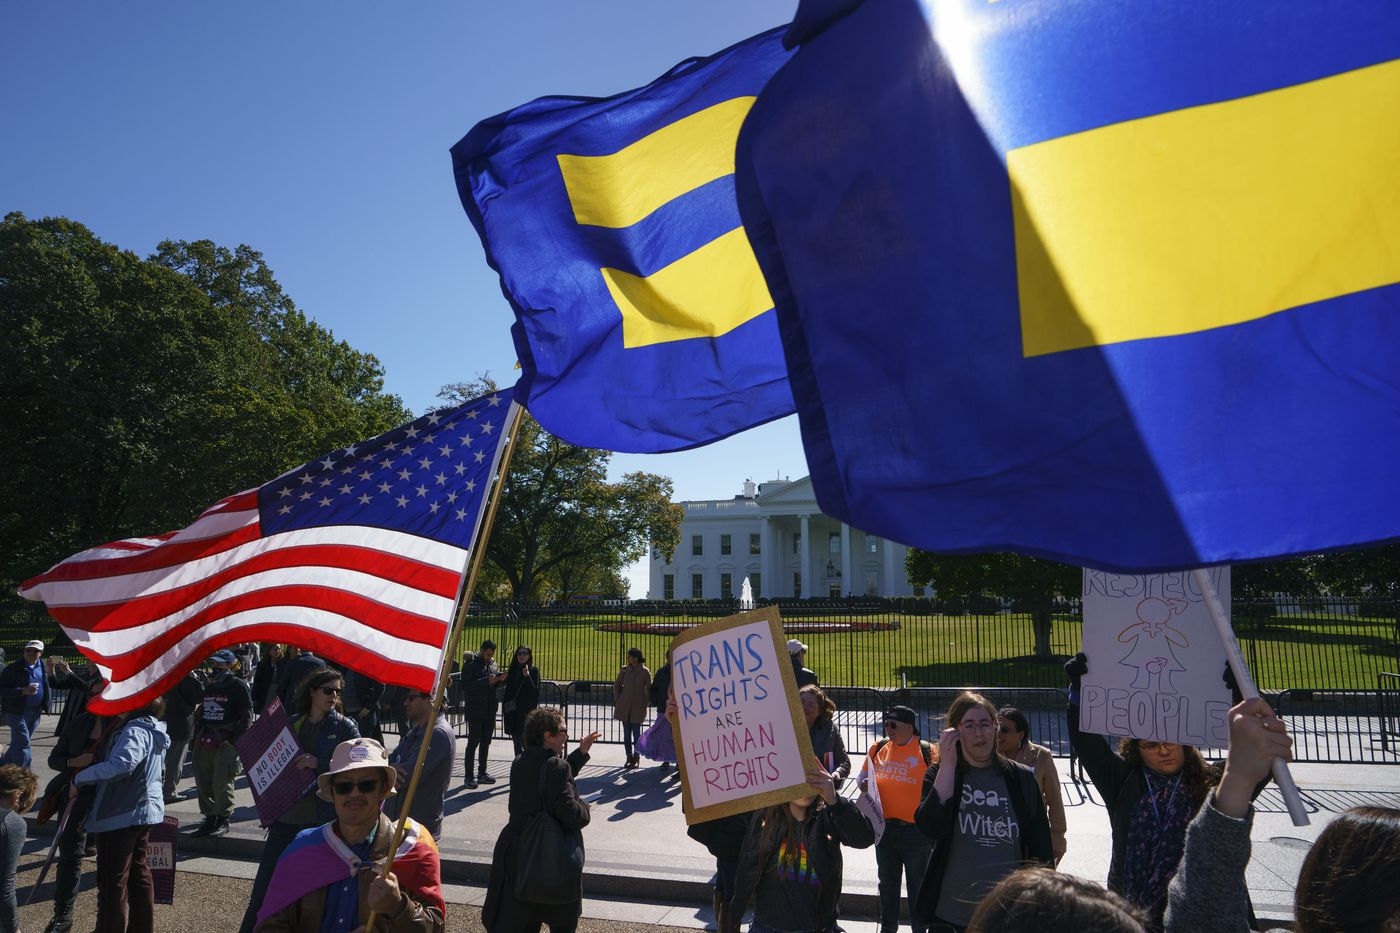 We need to support transgender youth in distress   Opinion